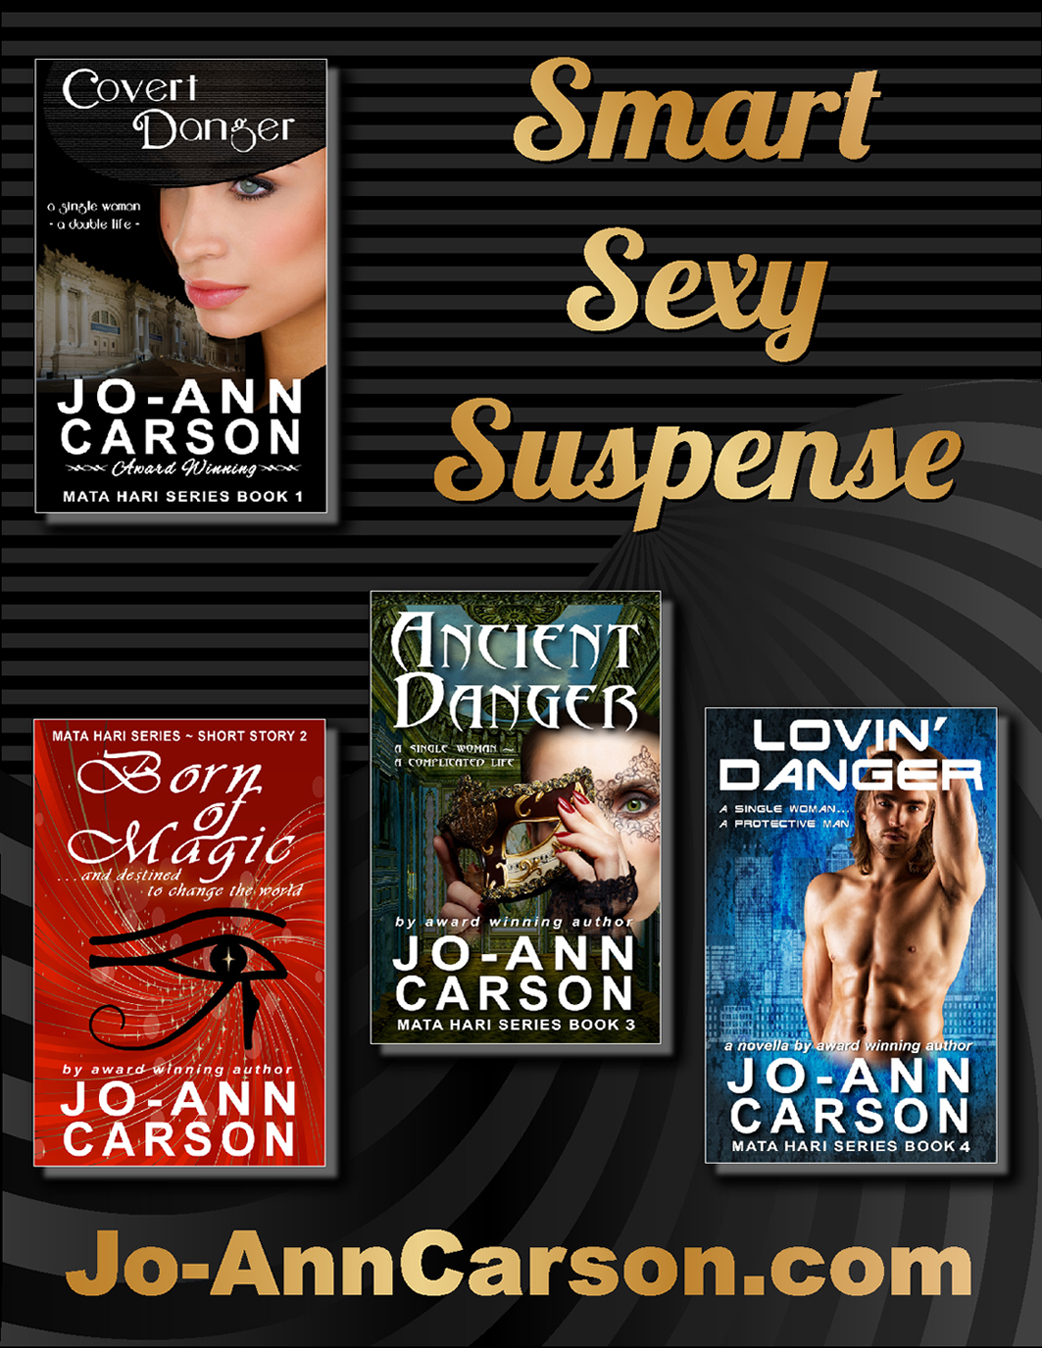 #Free #Suspense Books for the Beach and a Goodreads Giveaway